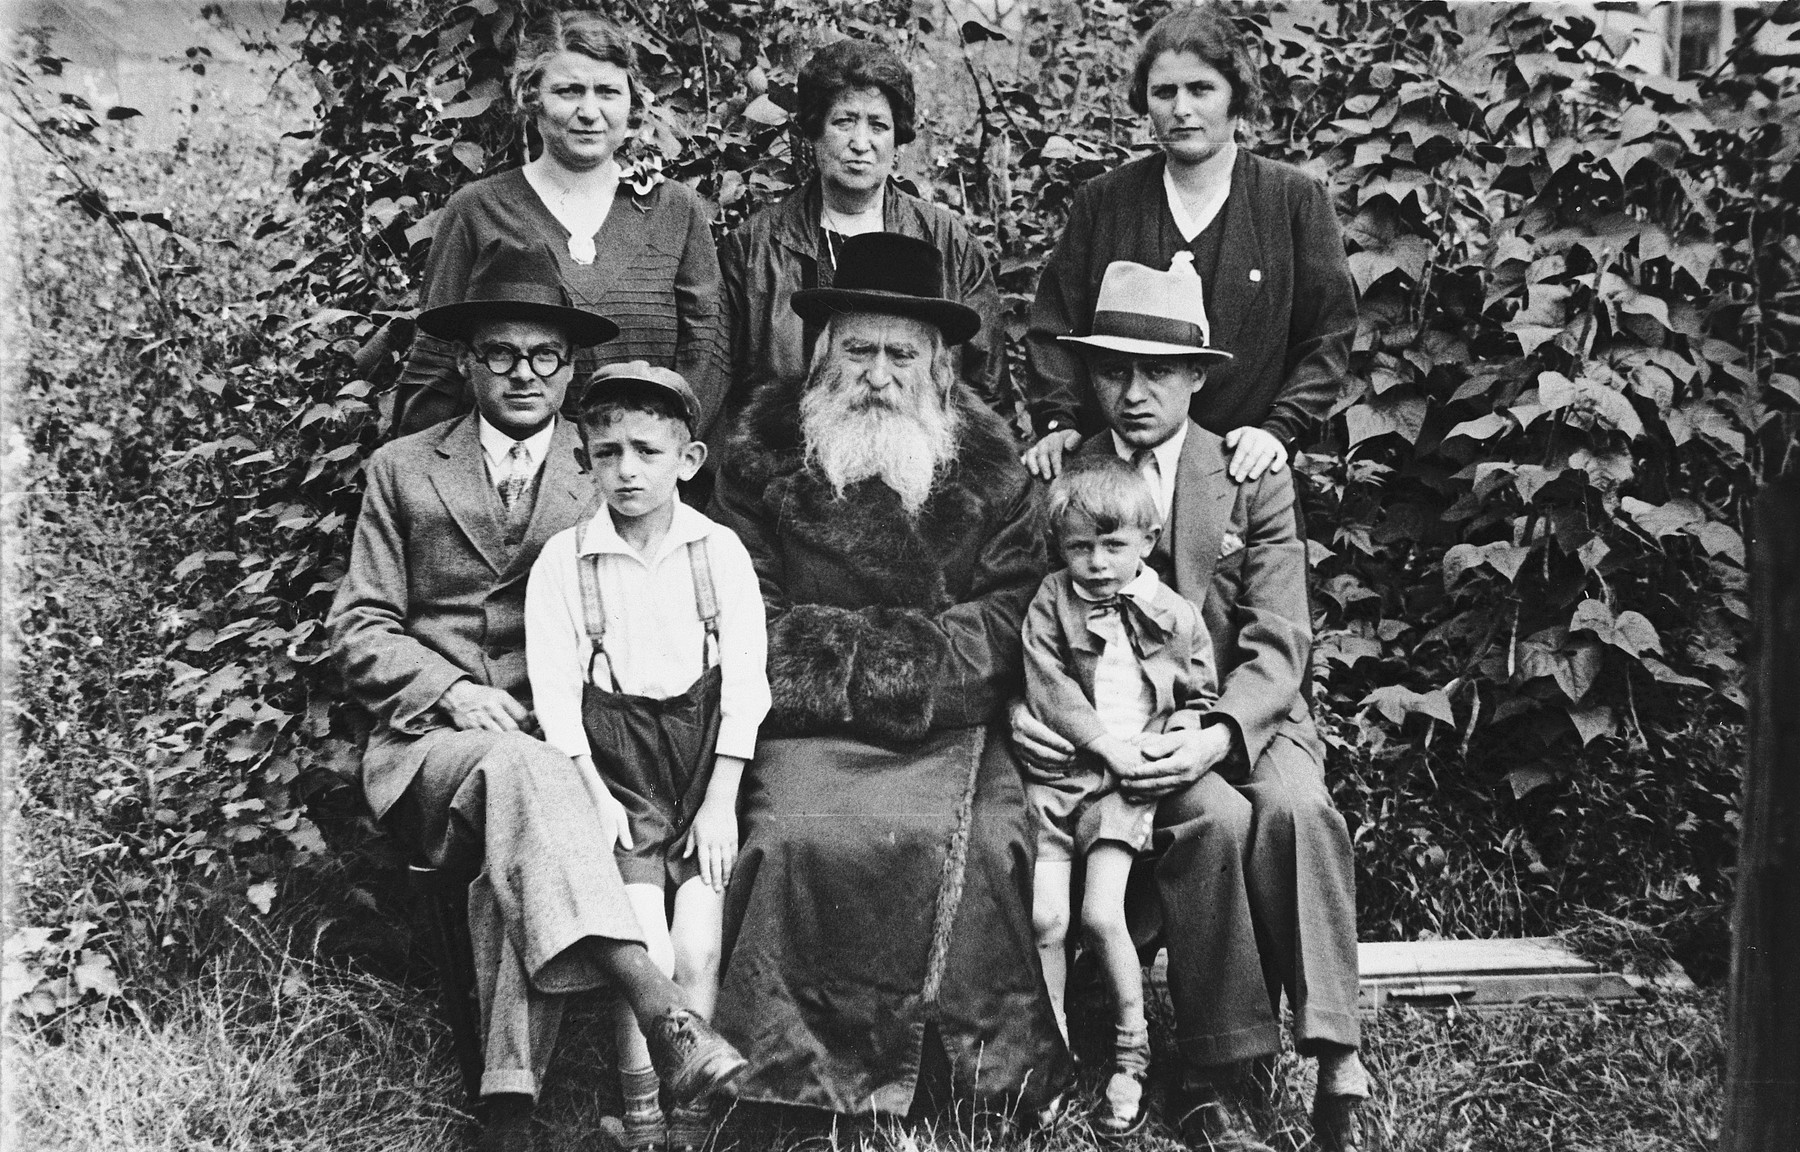 Three generations of a family pose for a group portrait on the occasion of the visit of a son from America.  Pictured in the front row are Moise Bander, a cousin of the donor (name unknown), Rabbi Meir Bander (the donor's grandfather), his son Harry Bander who was visiting from the United States, and Norbert Bikales seated on his lap.  Standing in back are Bertha Bander Bikales, the rabbi's second wife, and Bertha's sister.  Of those pictured only Norbert and Harry survived.